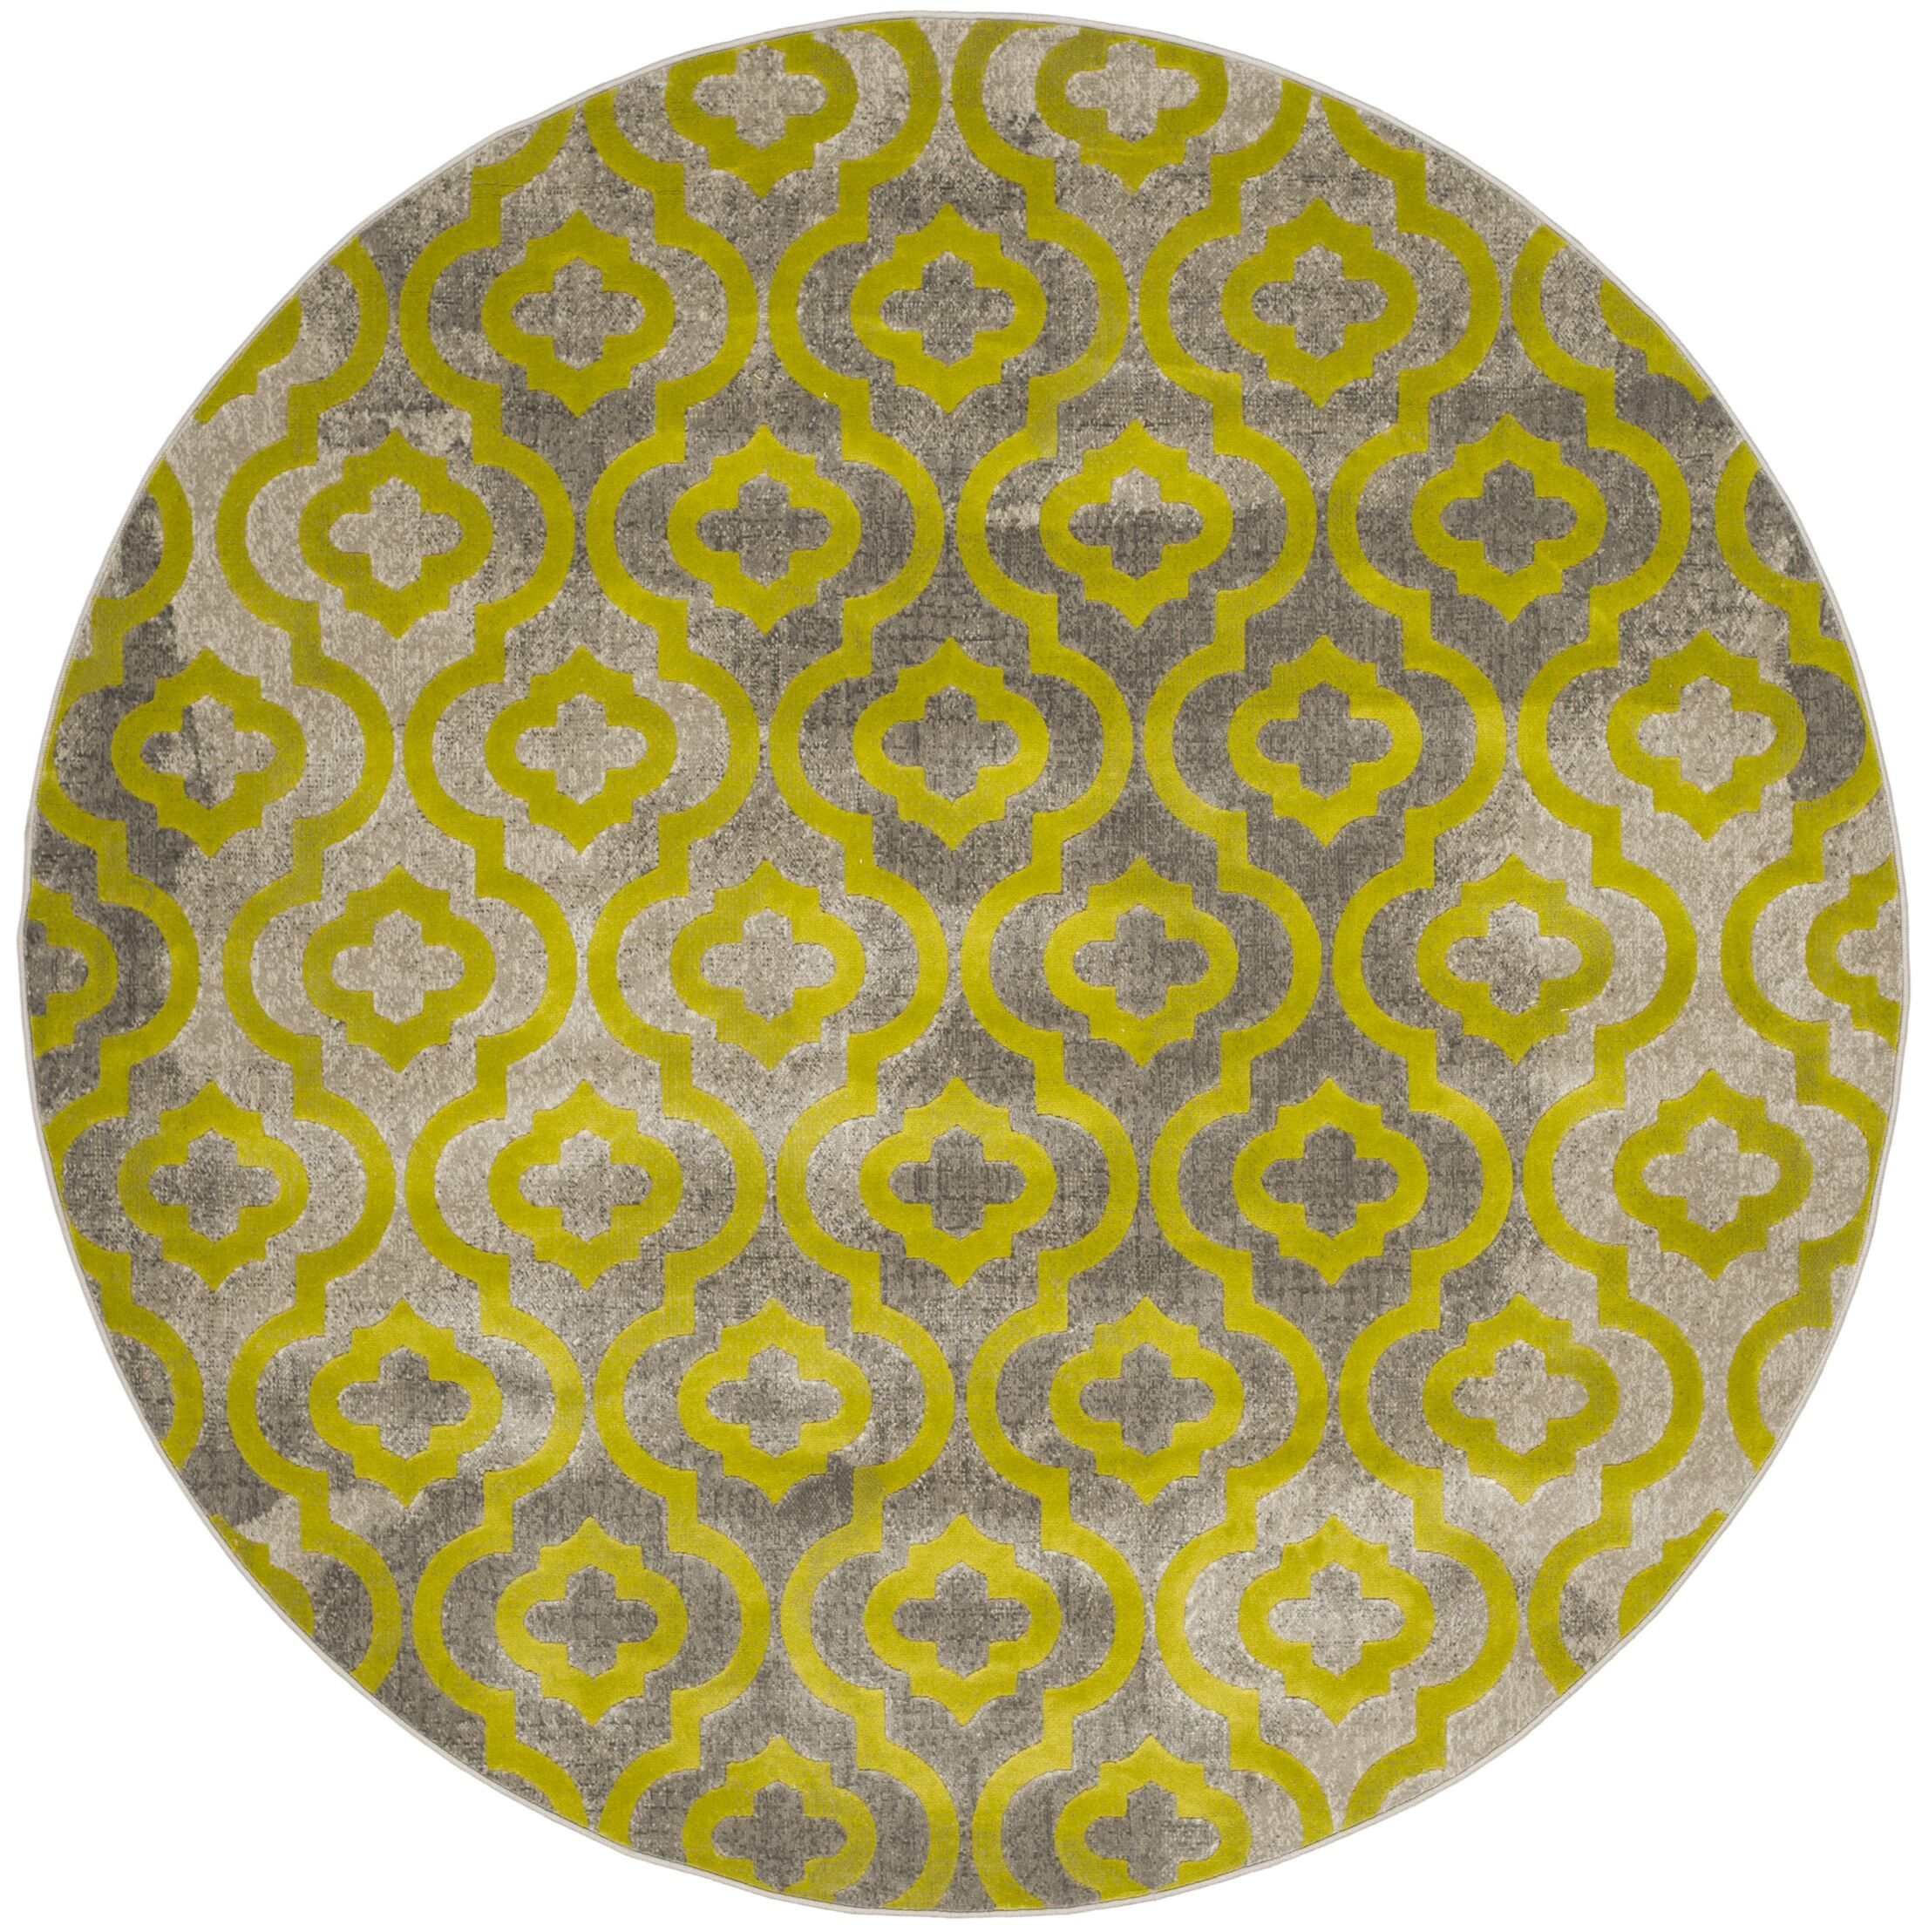 Manorhaven Light Gray/Green Area Rug Rug Size: Round 6'7